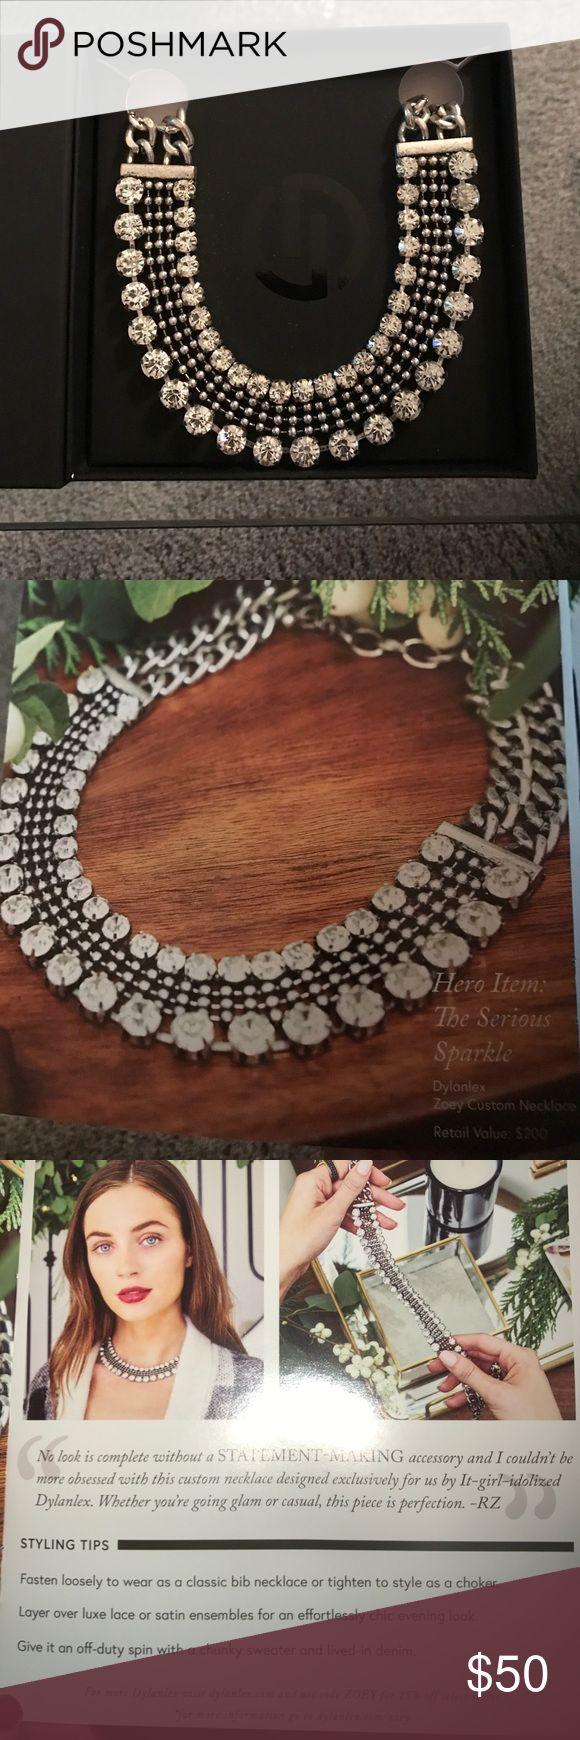 Statement necklace Rachael Zoe box of style by Dylanex. New. Unused in box Rachel Zoe Jewelry Necklaces